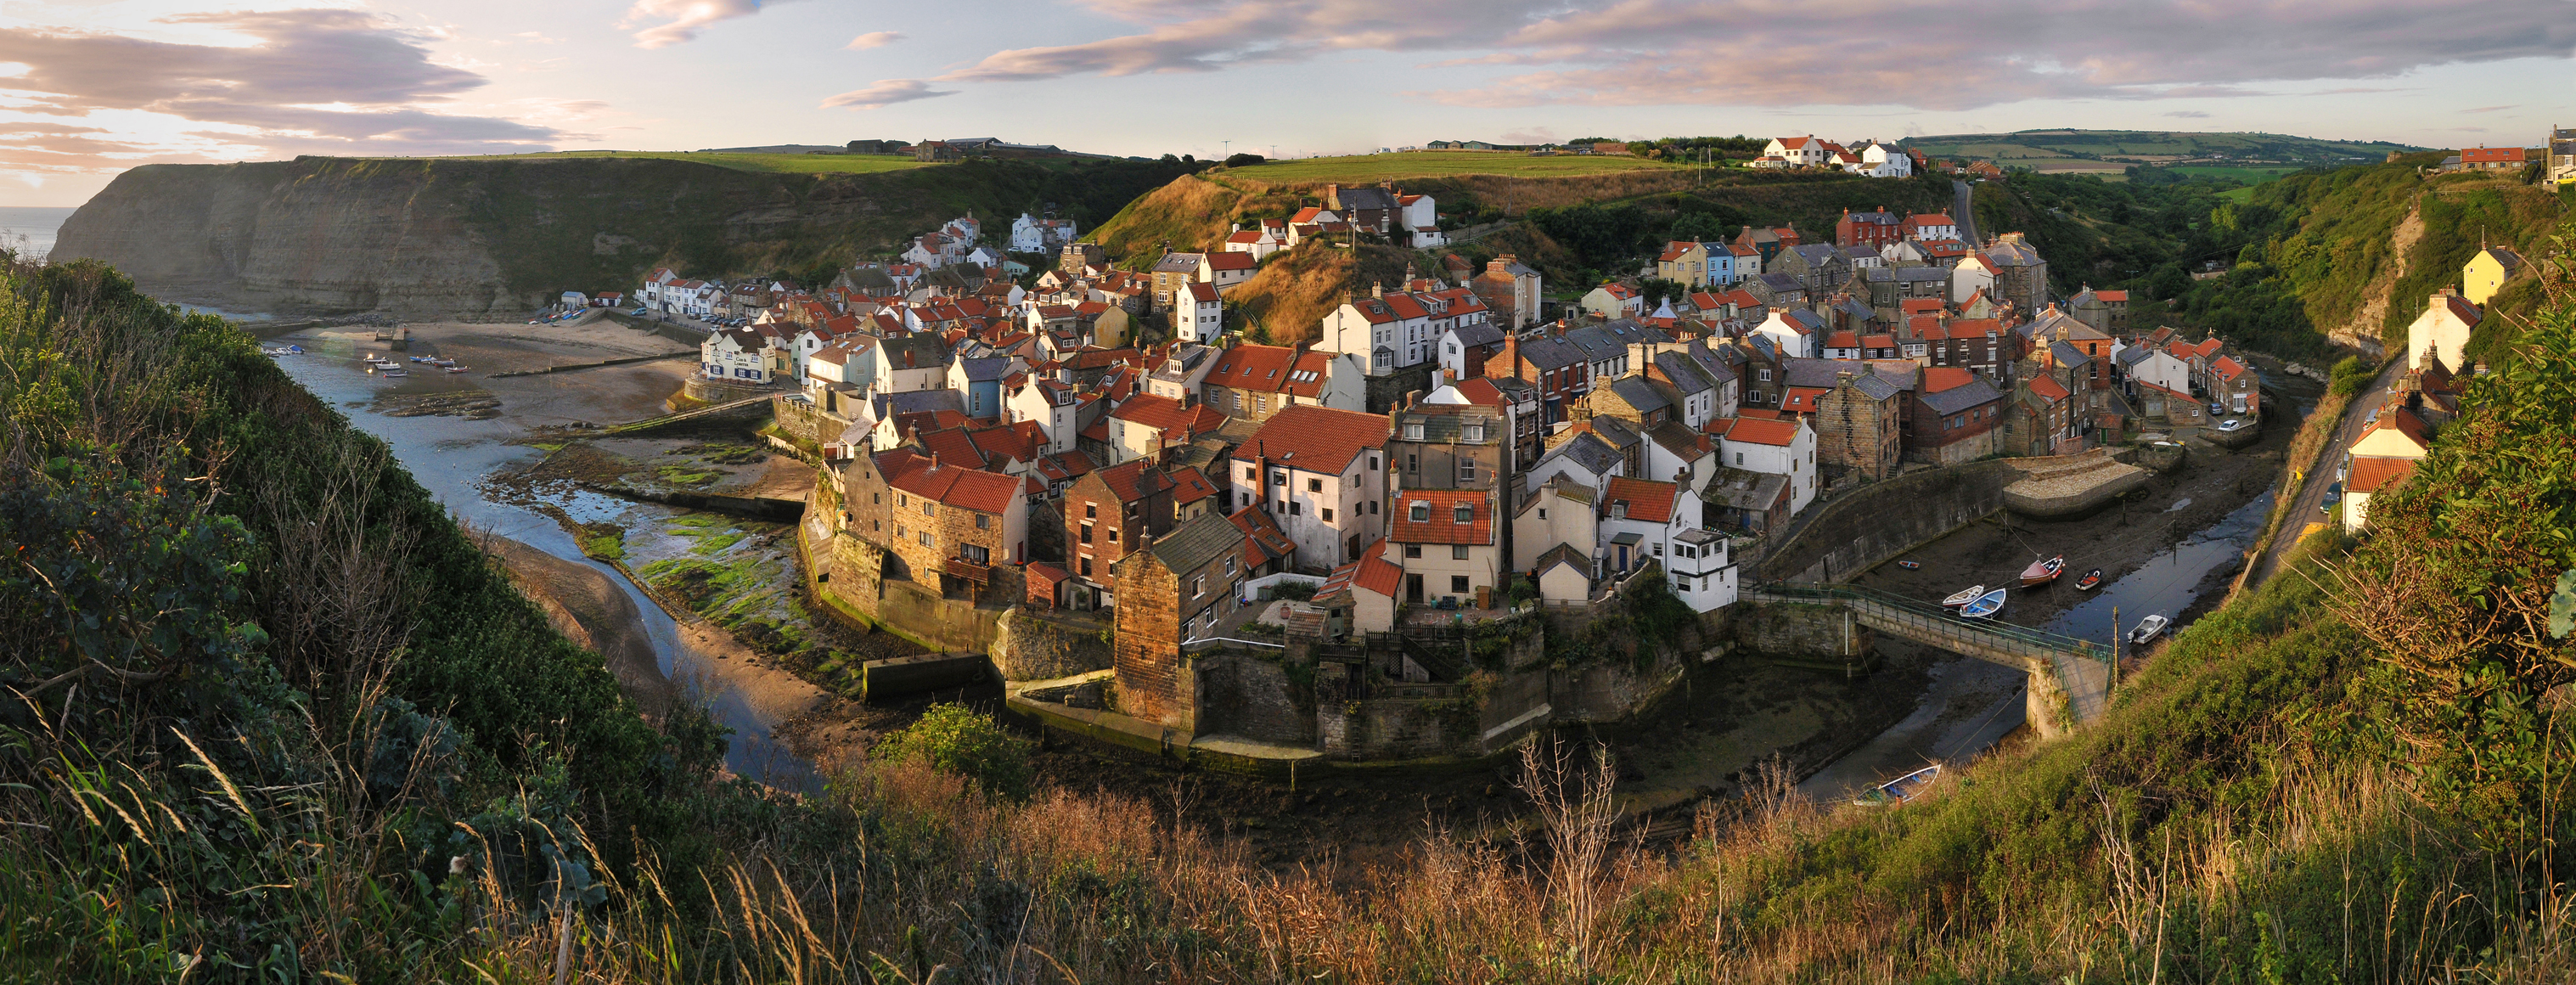 Staithes Panorama, Brian Swales